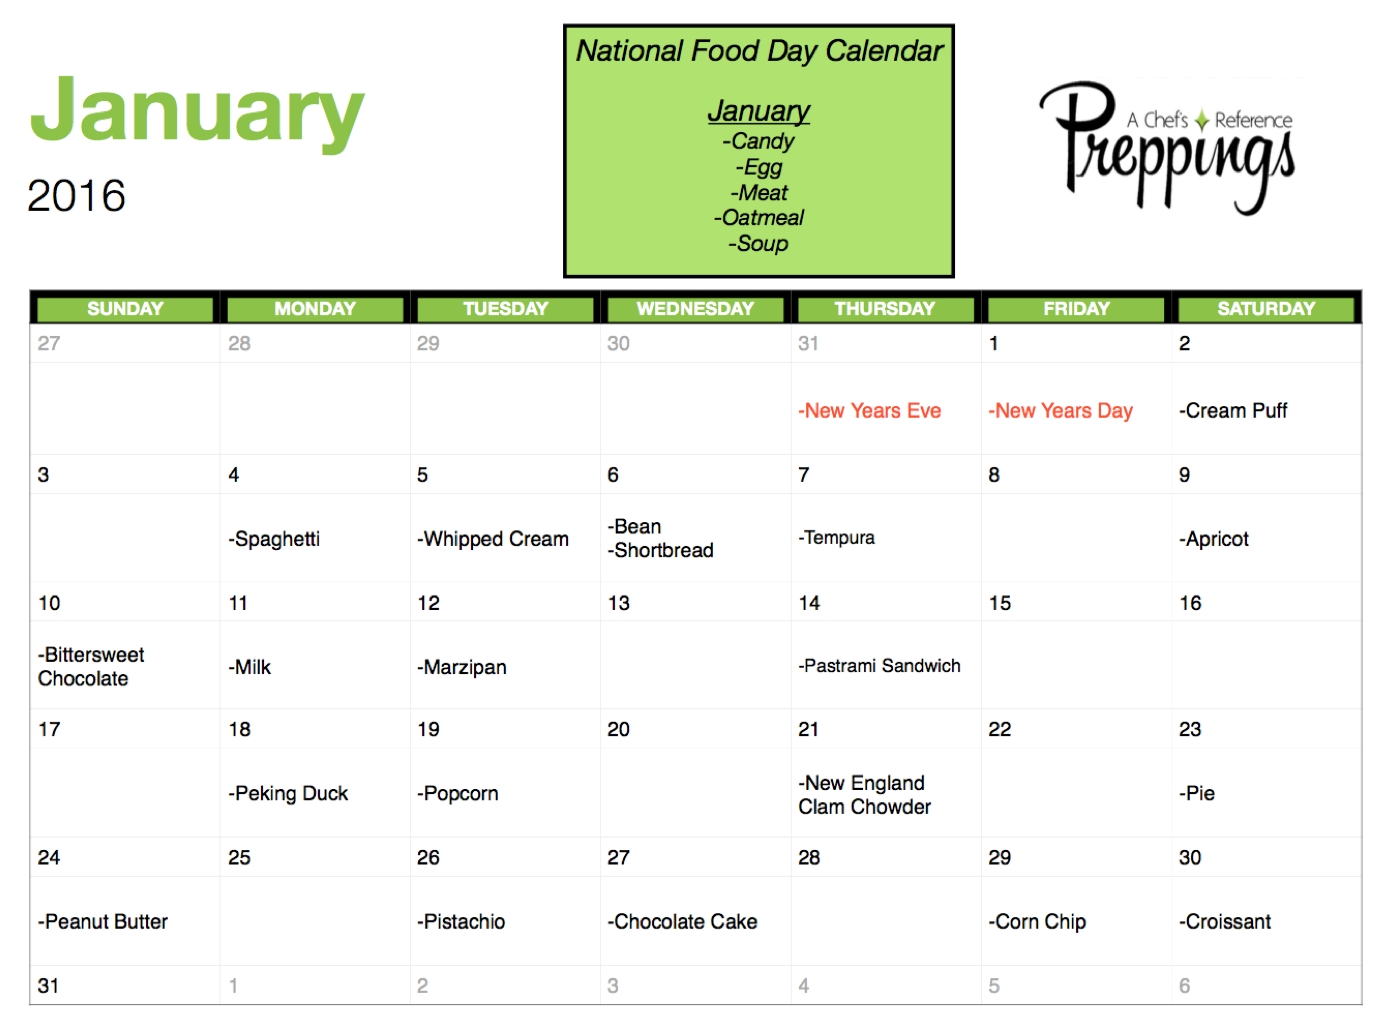 National Food Days- January 2016 - Preppings-National Food Holidays Calendar Download